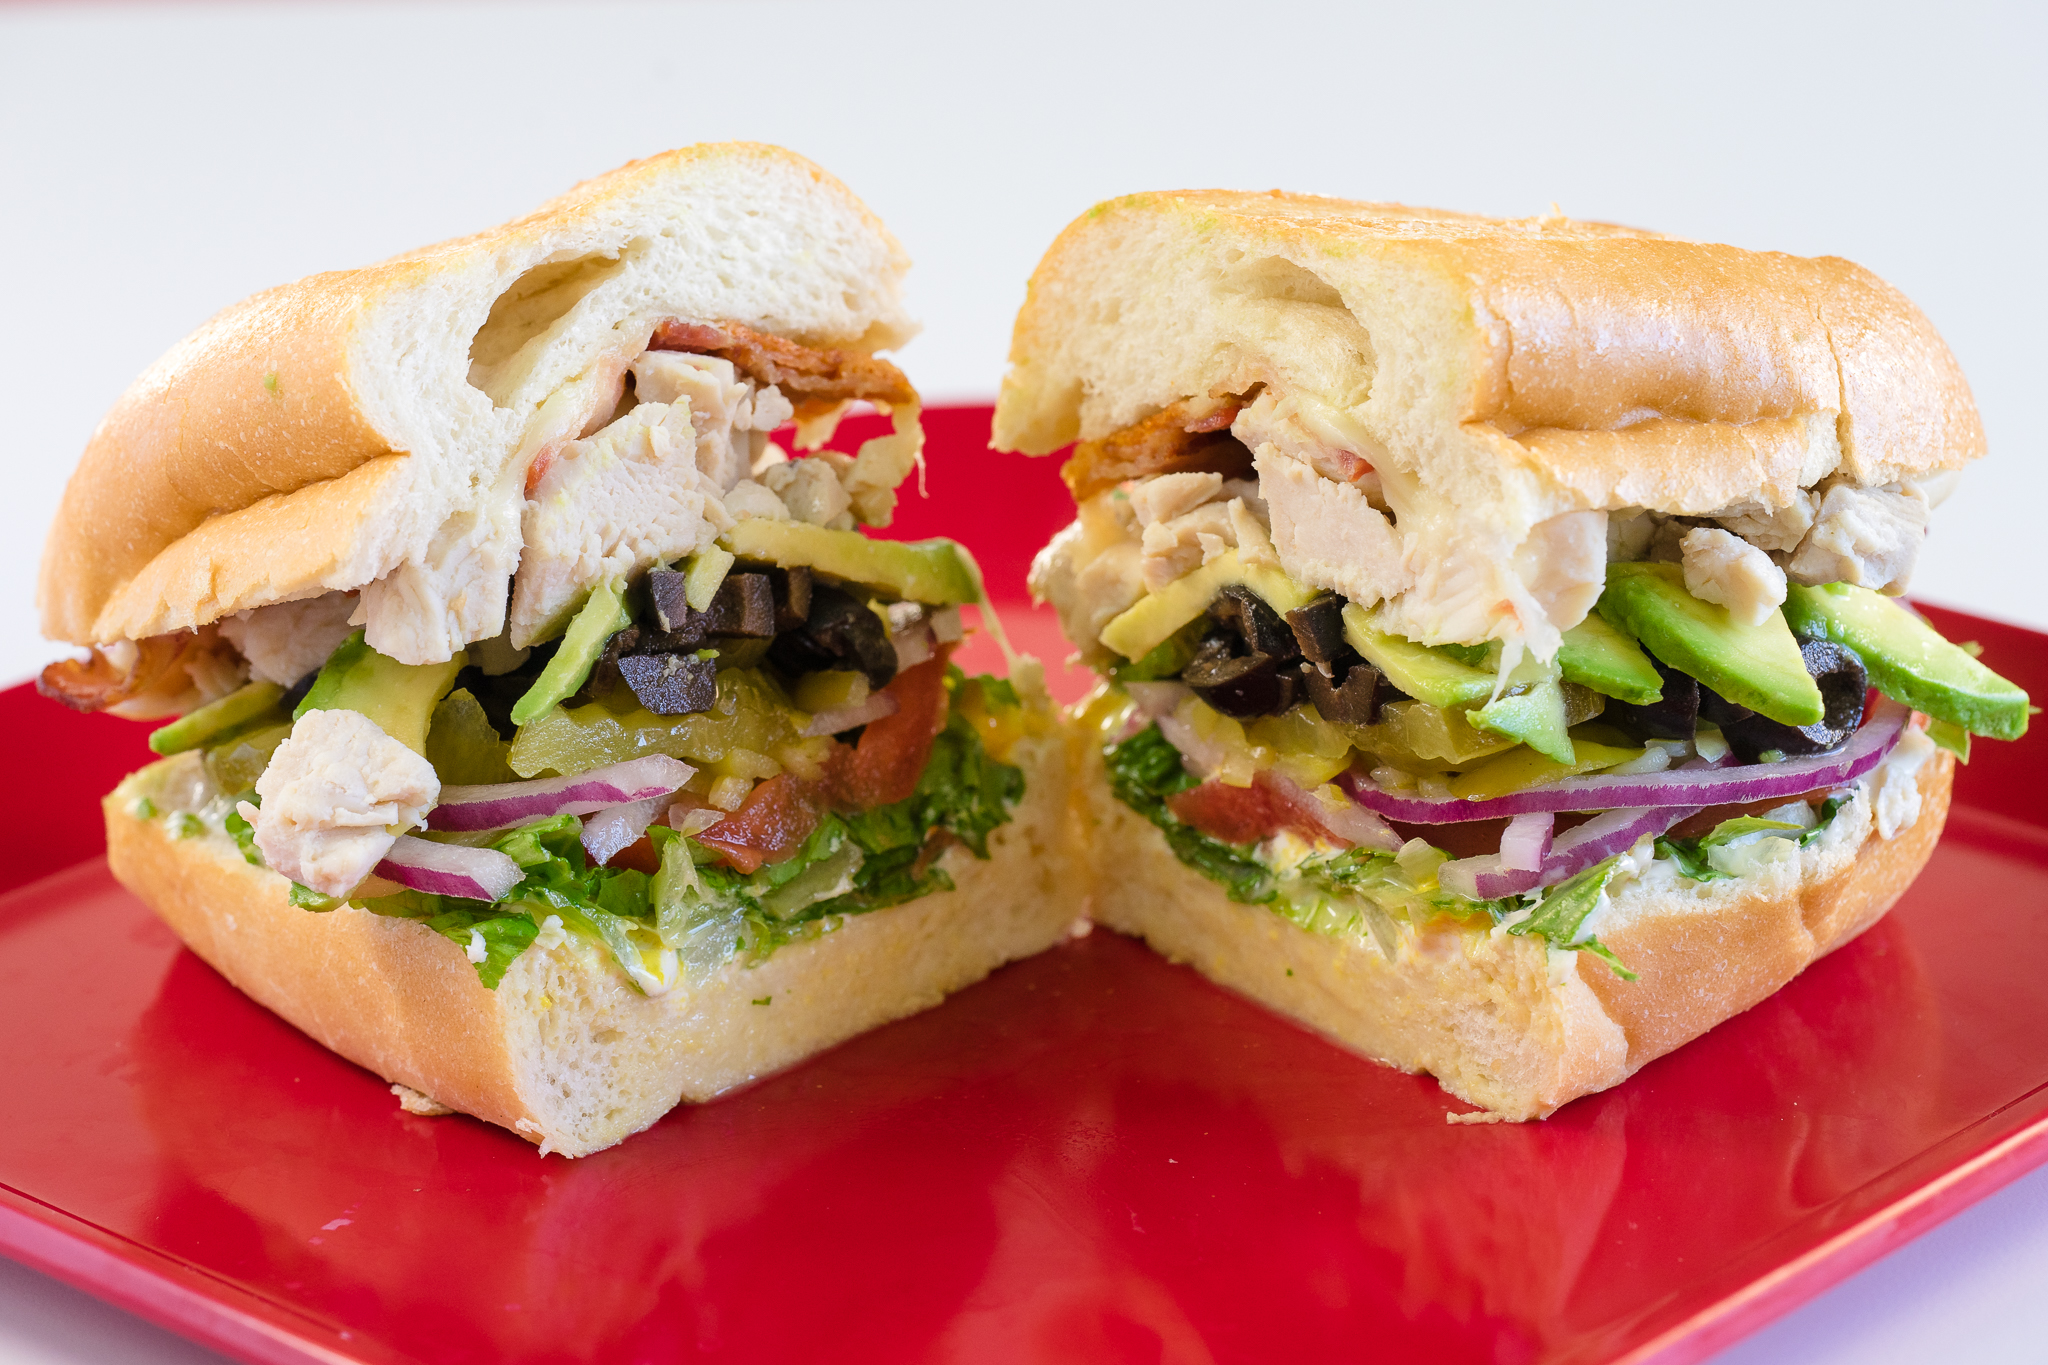 Chicken Breast and Bacon Sandwich with Avocado and Vegetables